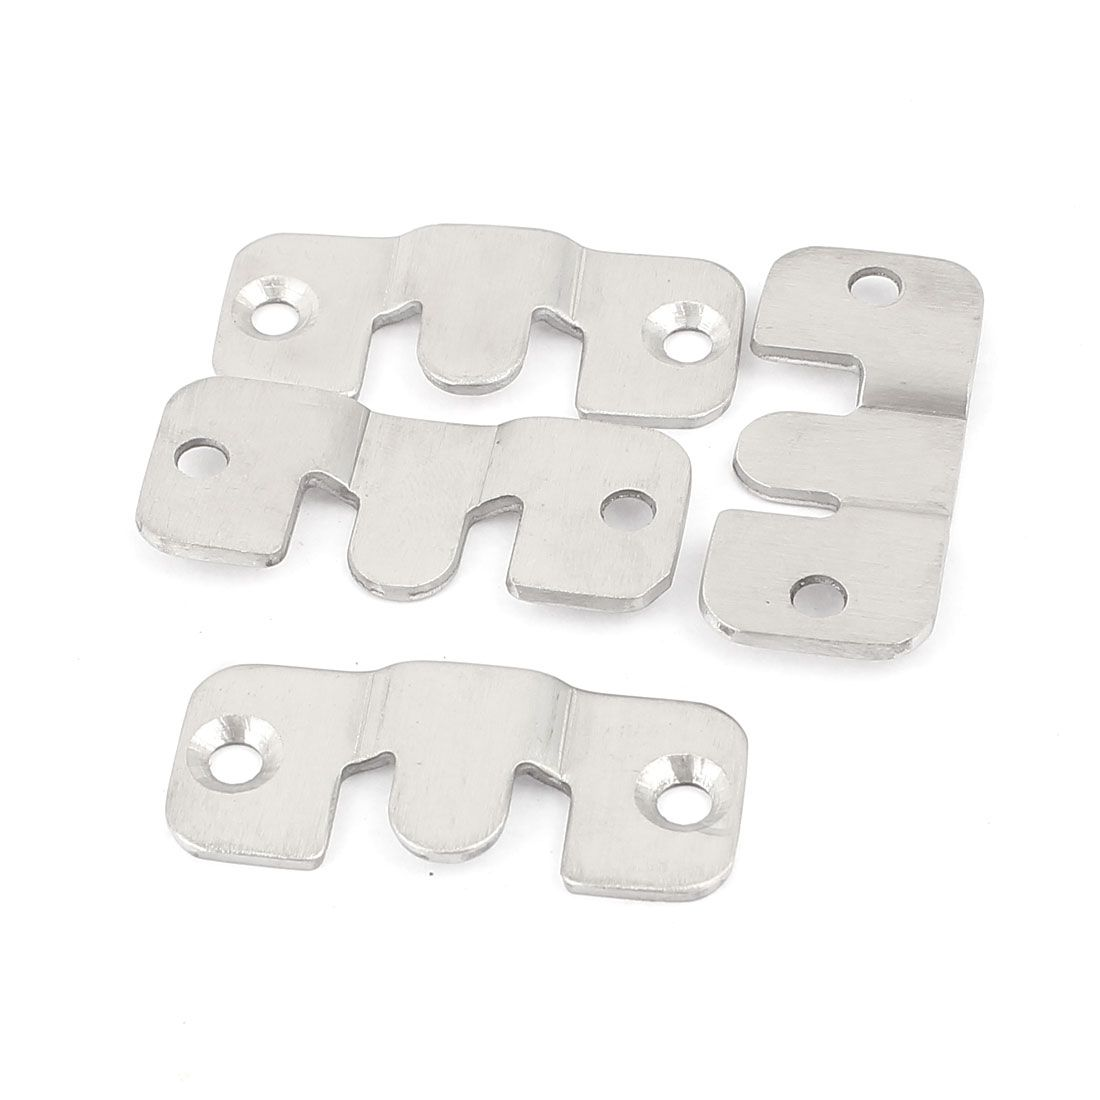 Uxcell Universal Sectional Interlock Sofa Couch Connector Bracket Set 4pcs